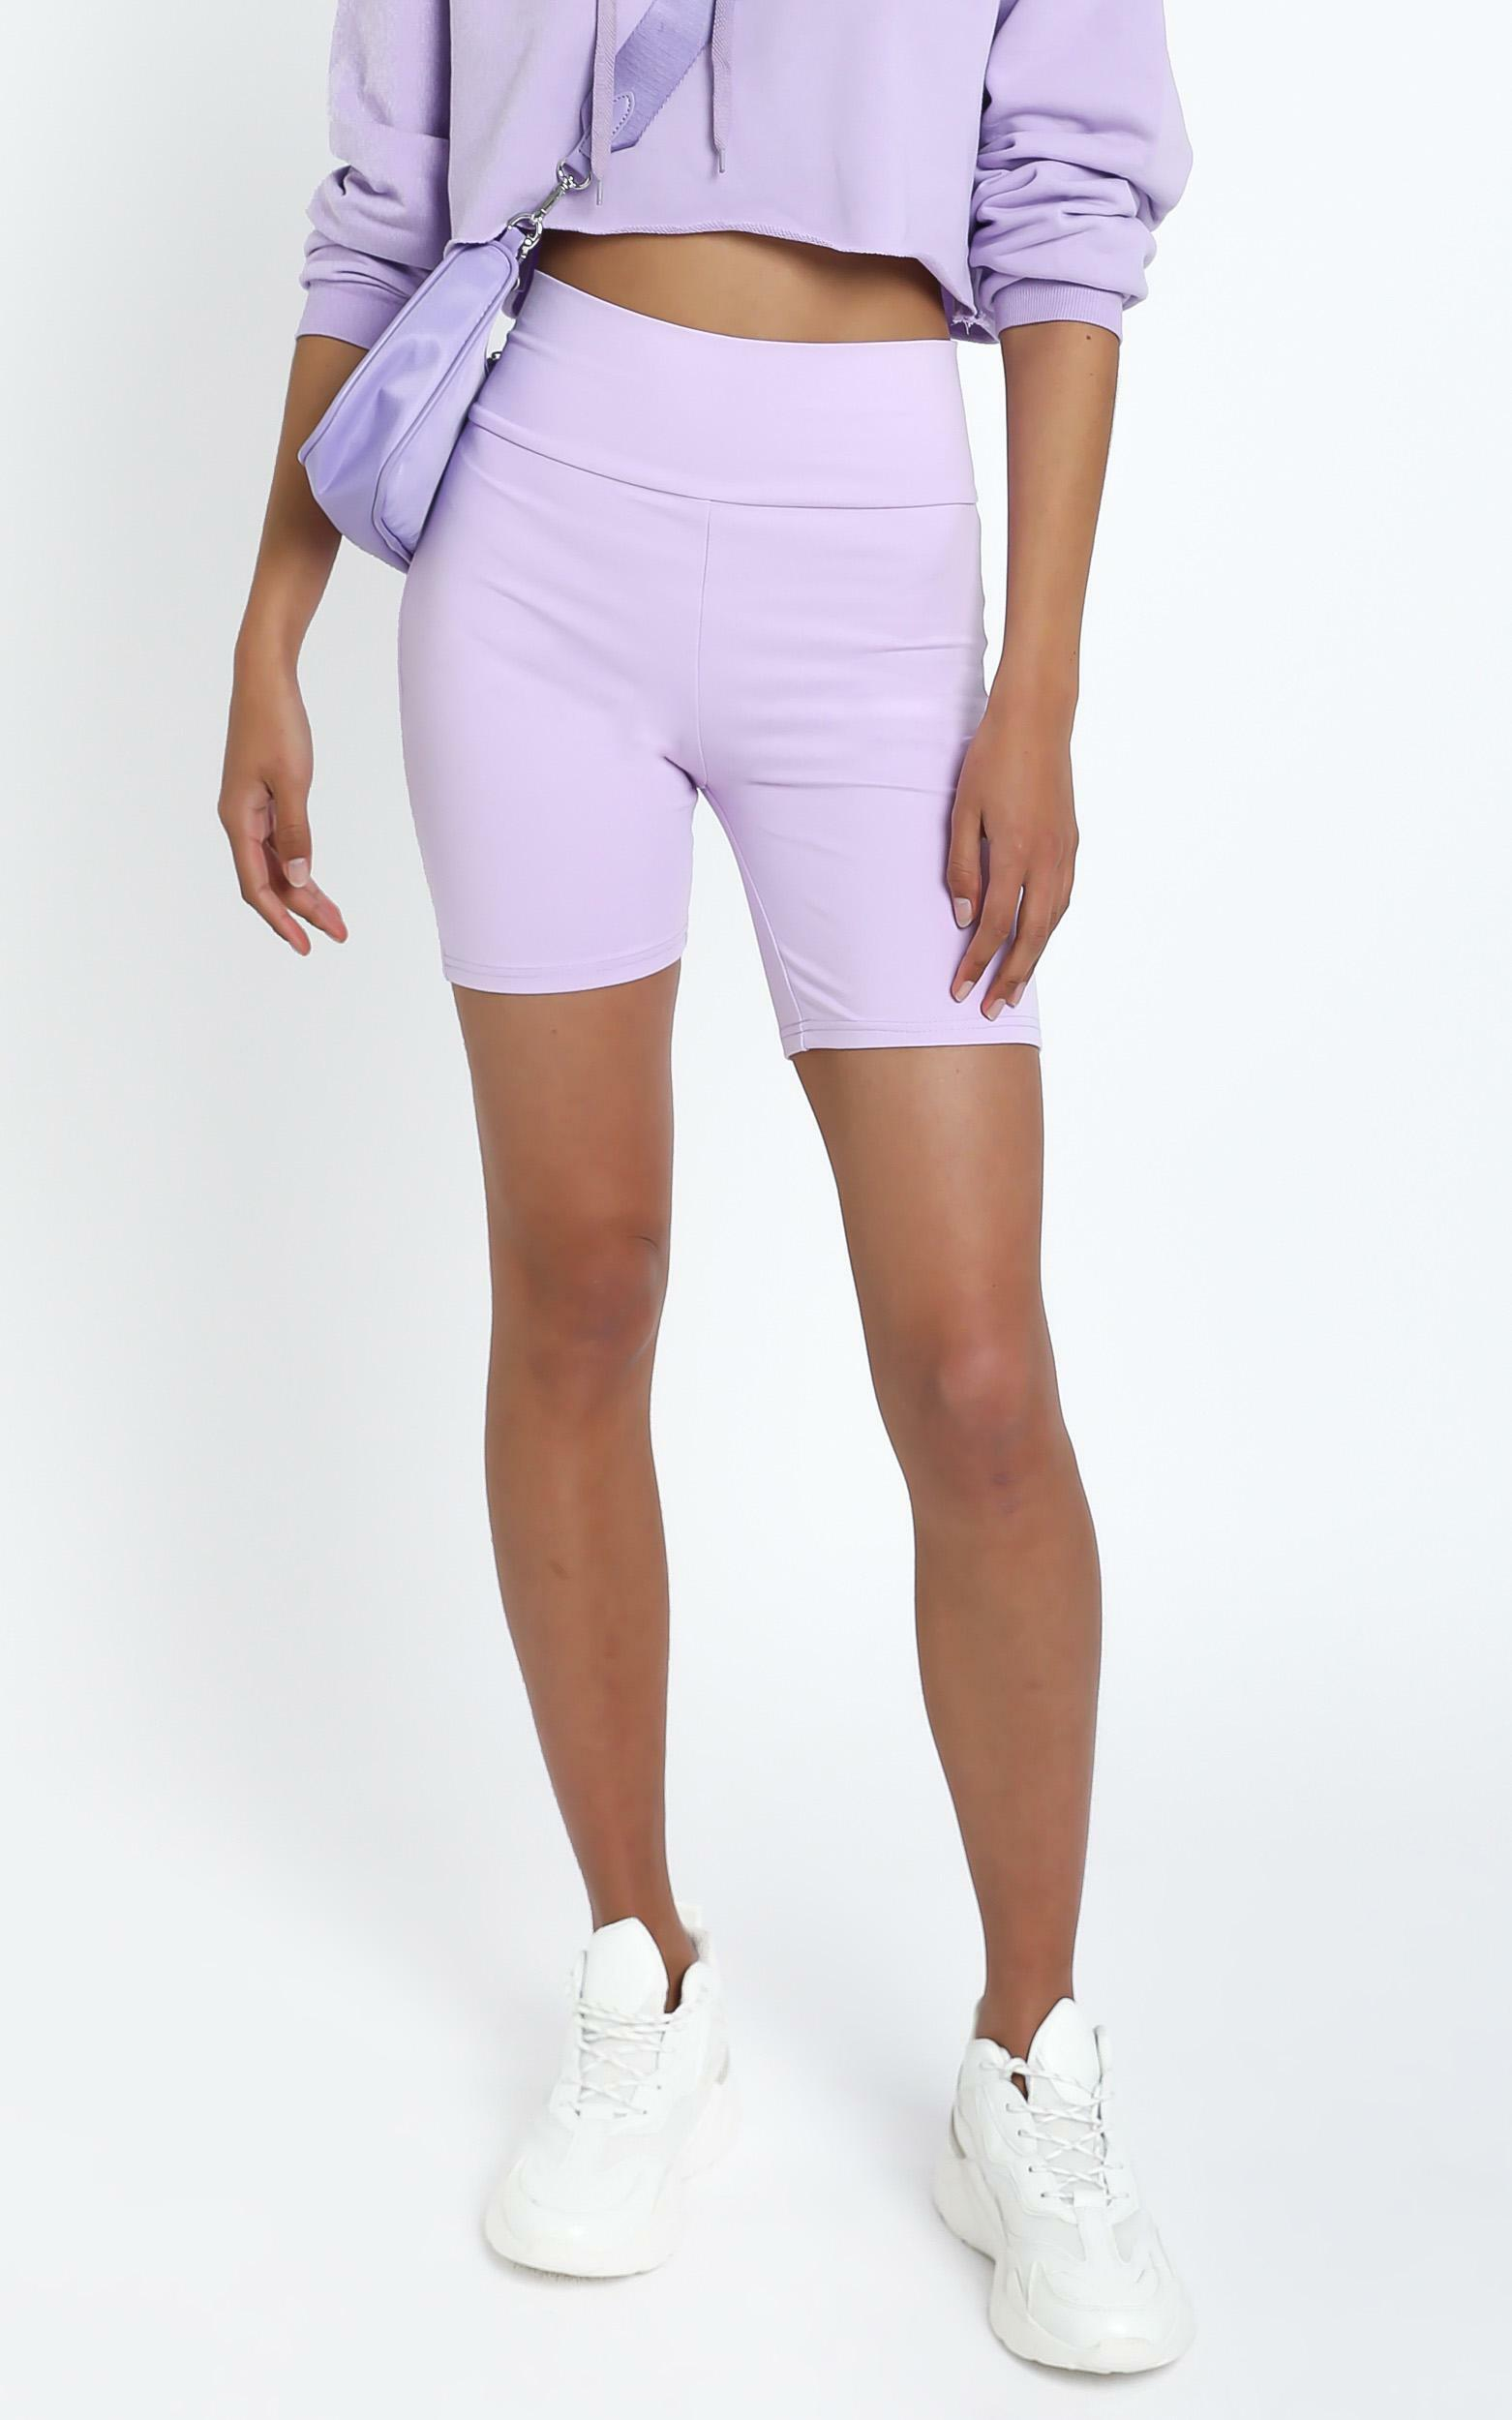 Nerida Bike Shorts in Lilac - 14 (XL), Purple, hi-res image number null